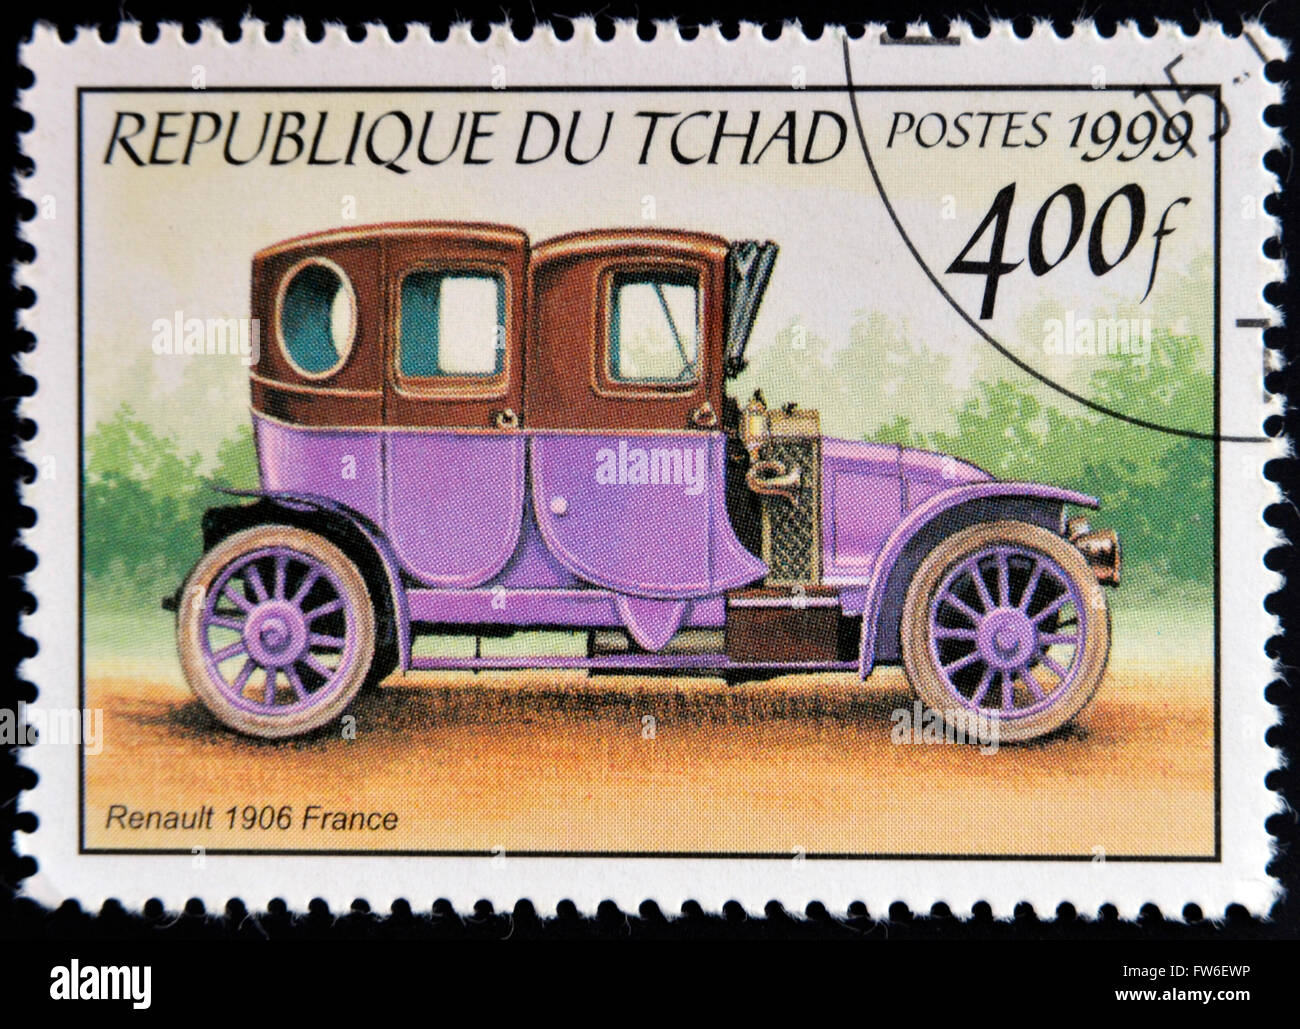 CHAD - CIRCA 1999: A stamp printed in Chad shows retro car Renault 1906, France, circa 1999 - Stock Image